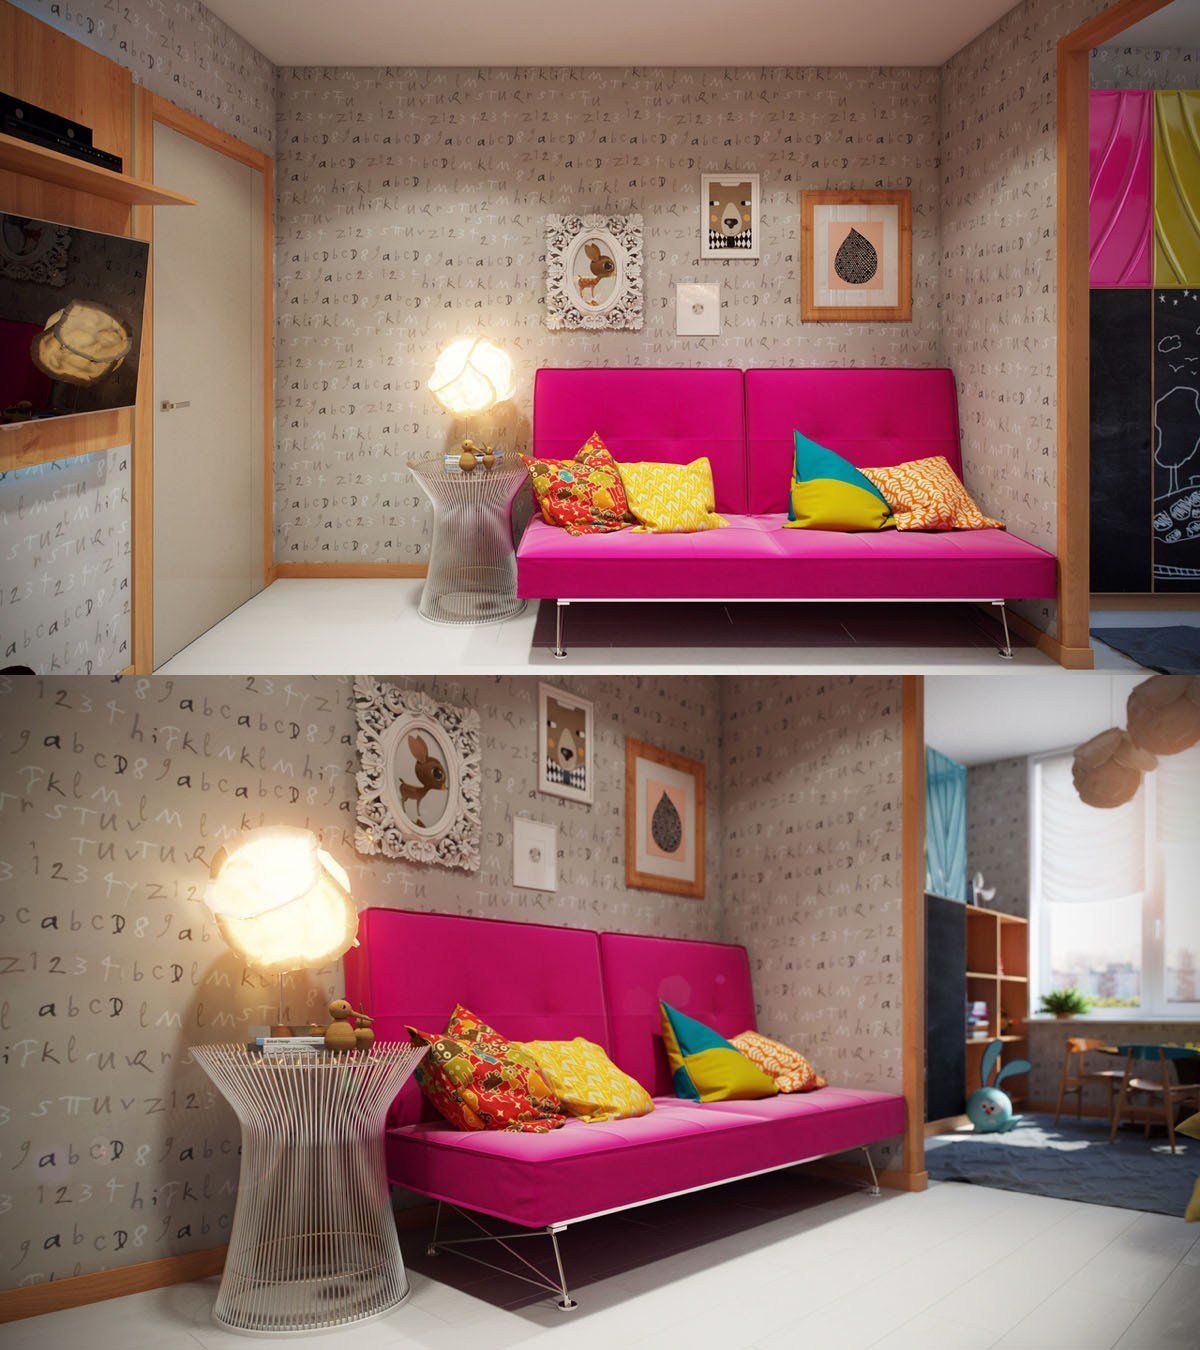 Best Bright And Colorful Kids Room Designs With Whimsical With Pictures